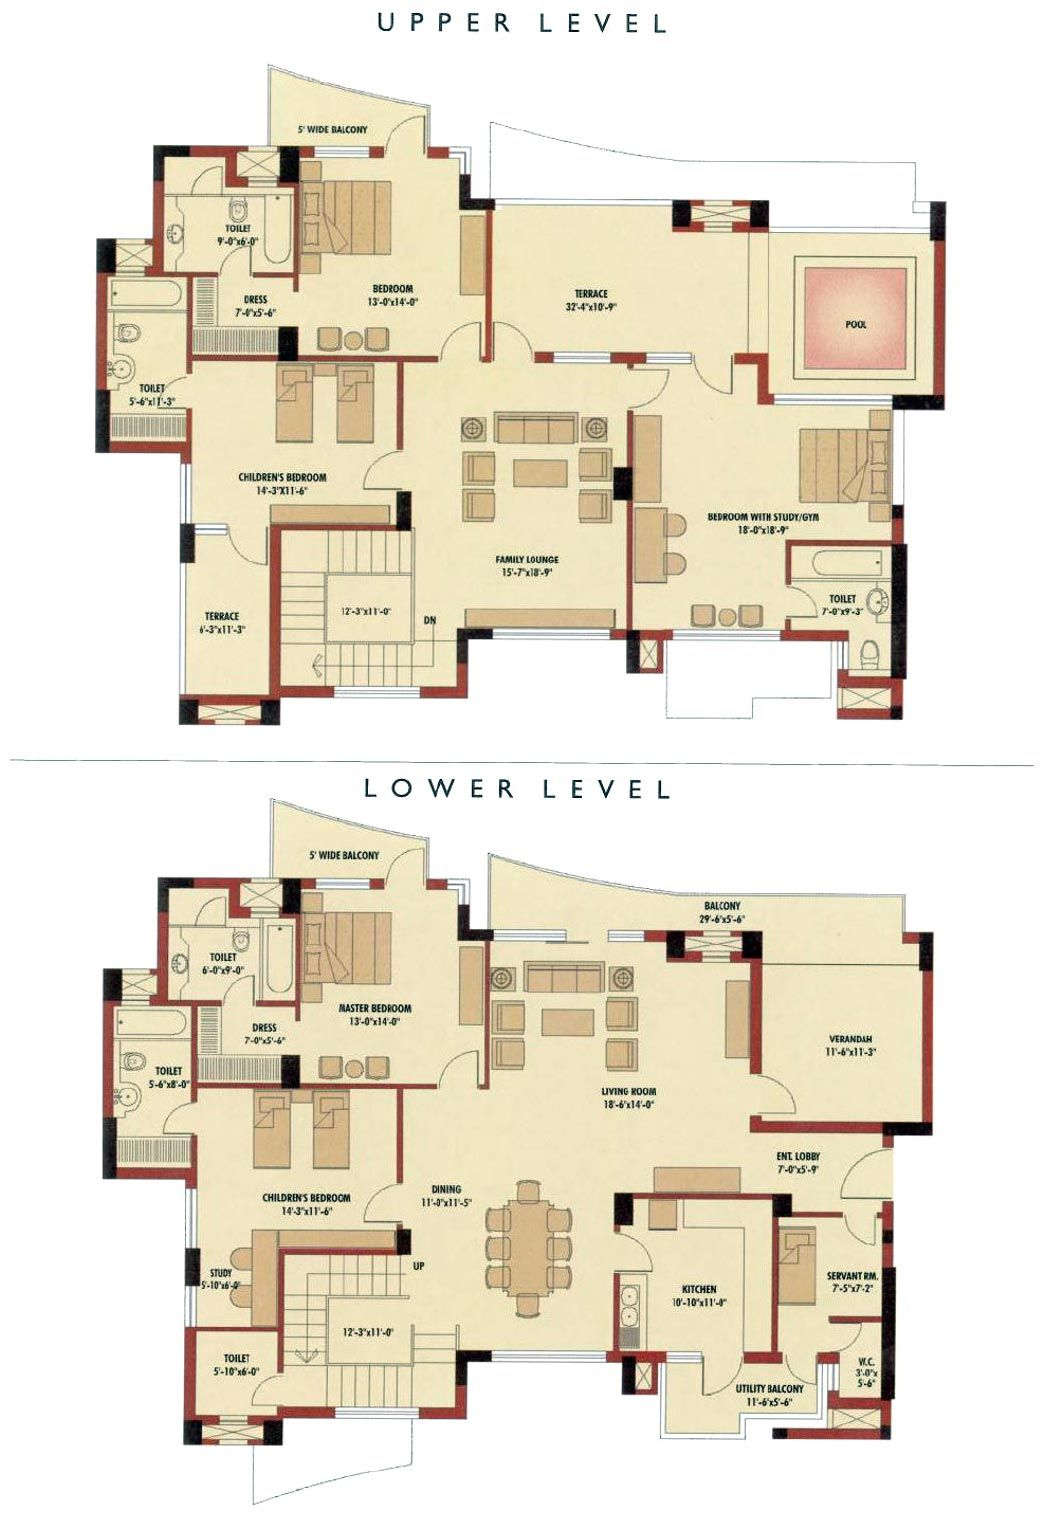 4 Bedroom Floor Plans For Duplexes Luxury Penthouse Floor Plans Duplex House Plans House Plans Duplex House